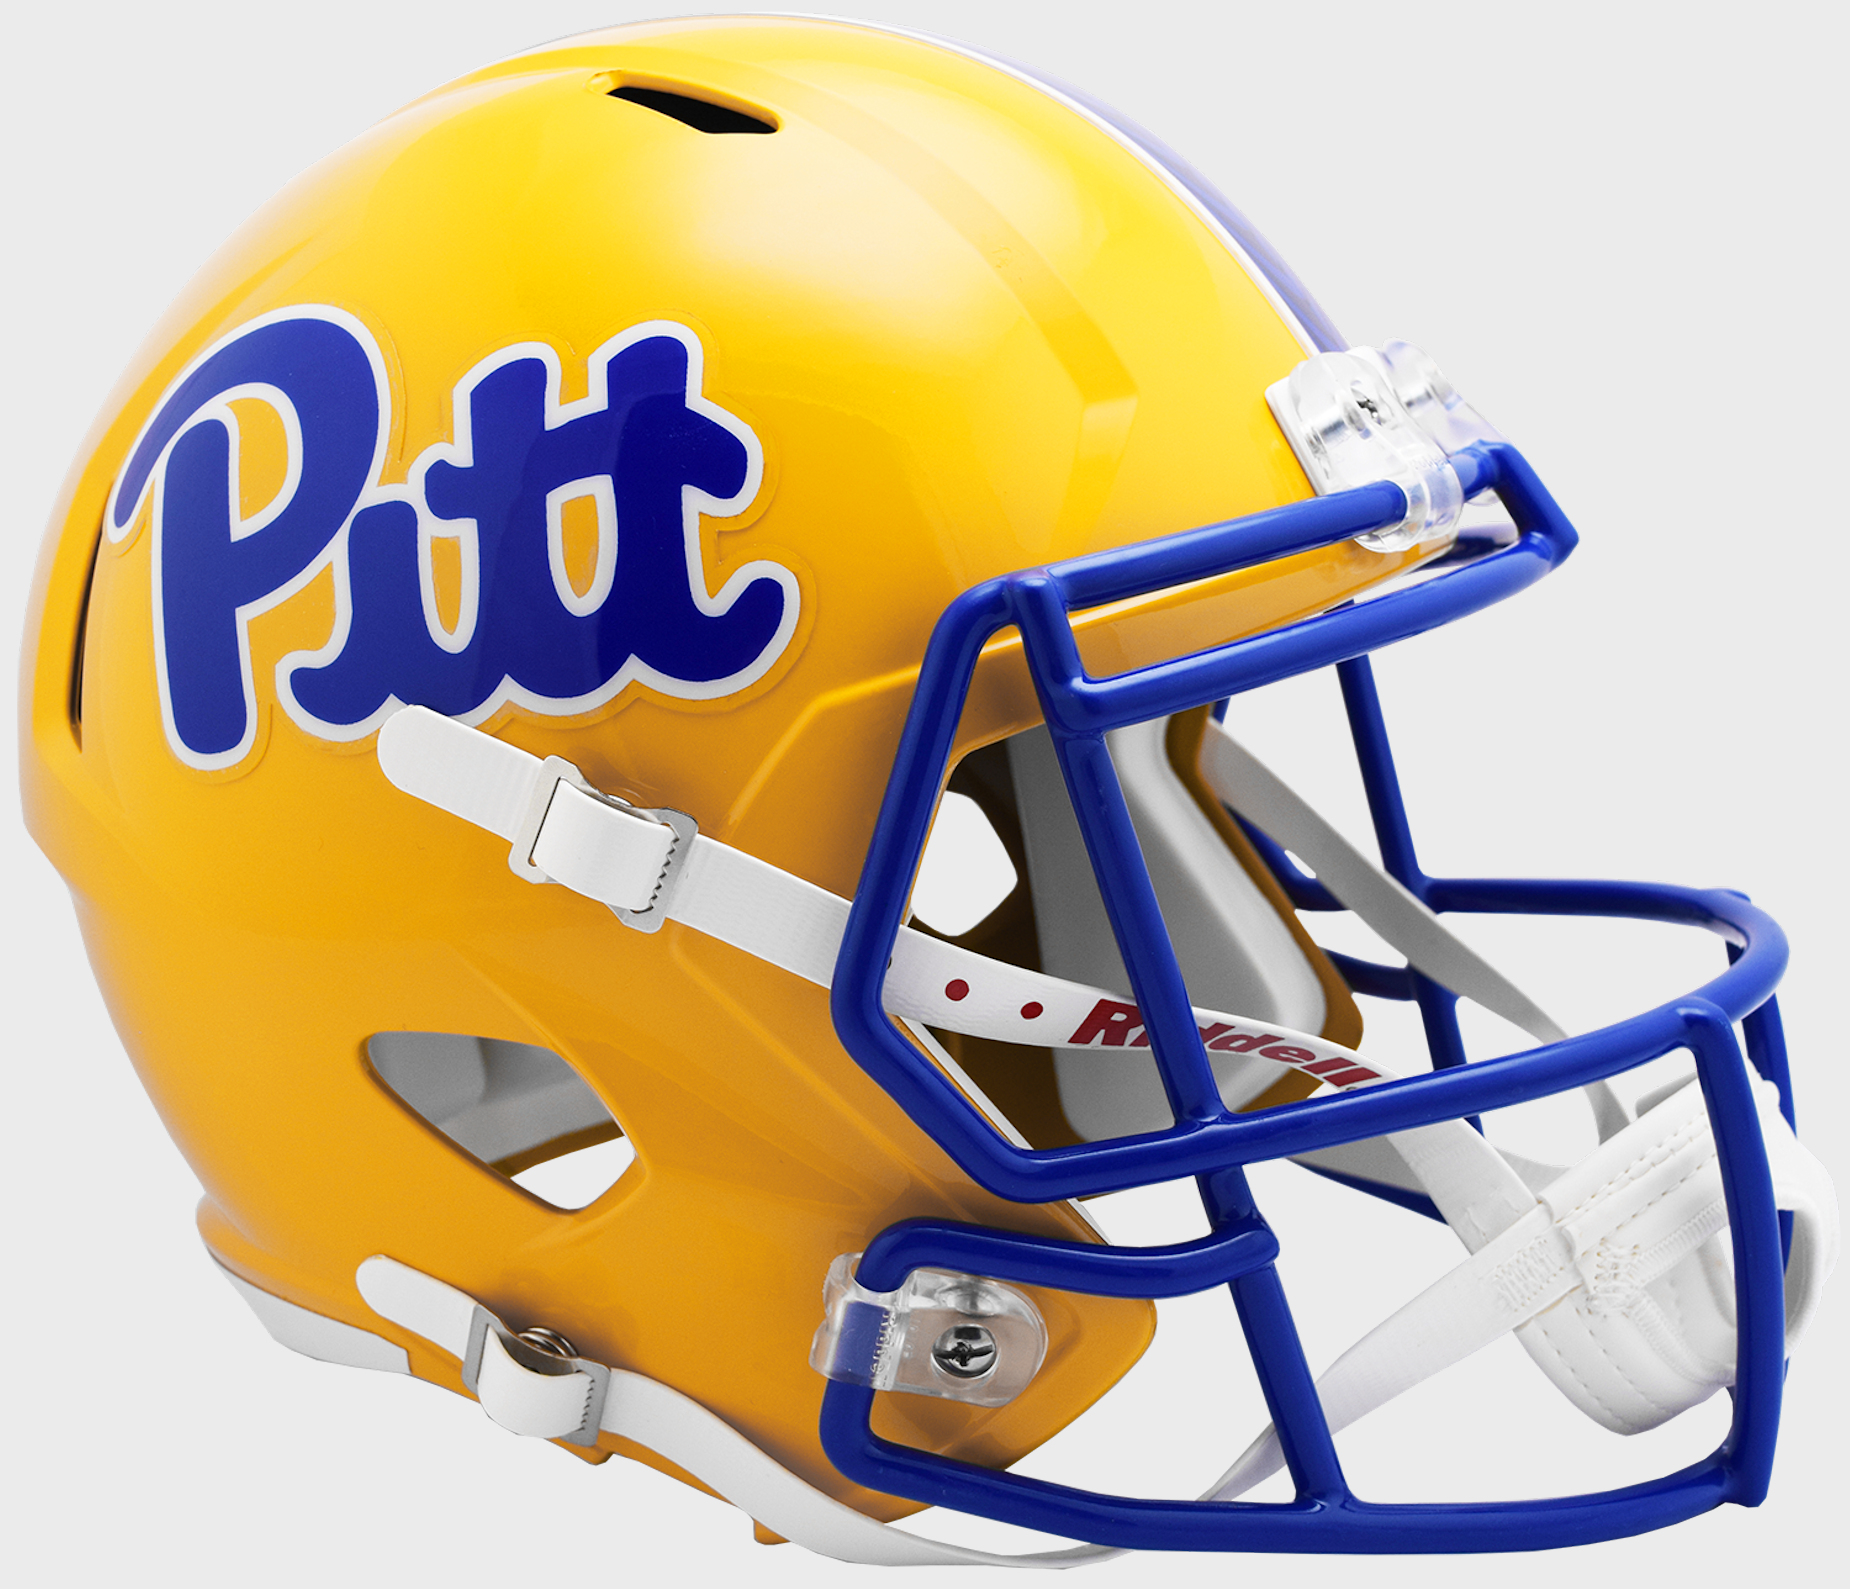 Pittsburgh Panthers Speed Replica Football Helmet <B>2019 Gold</B>